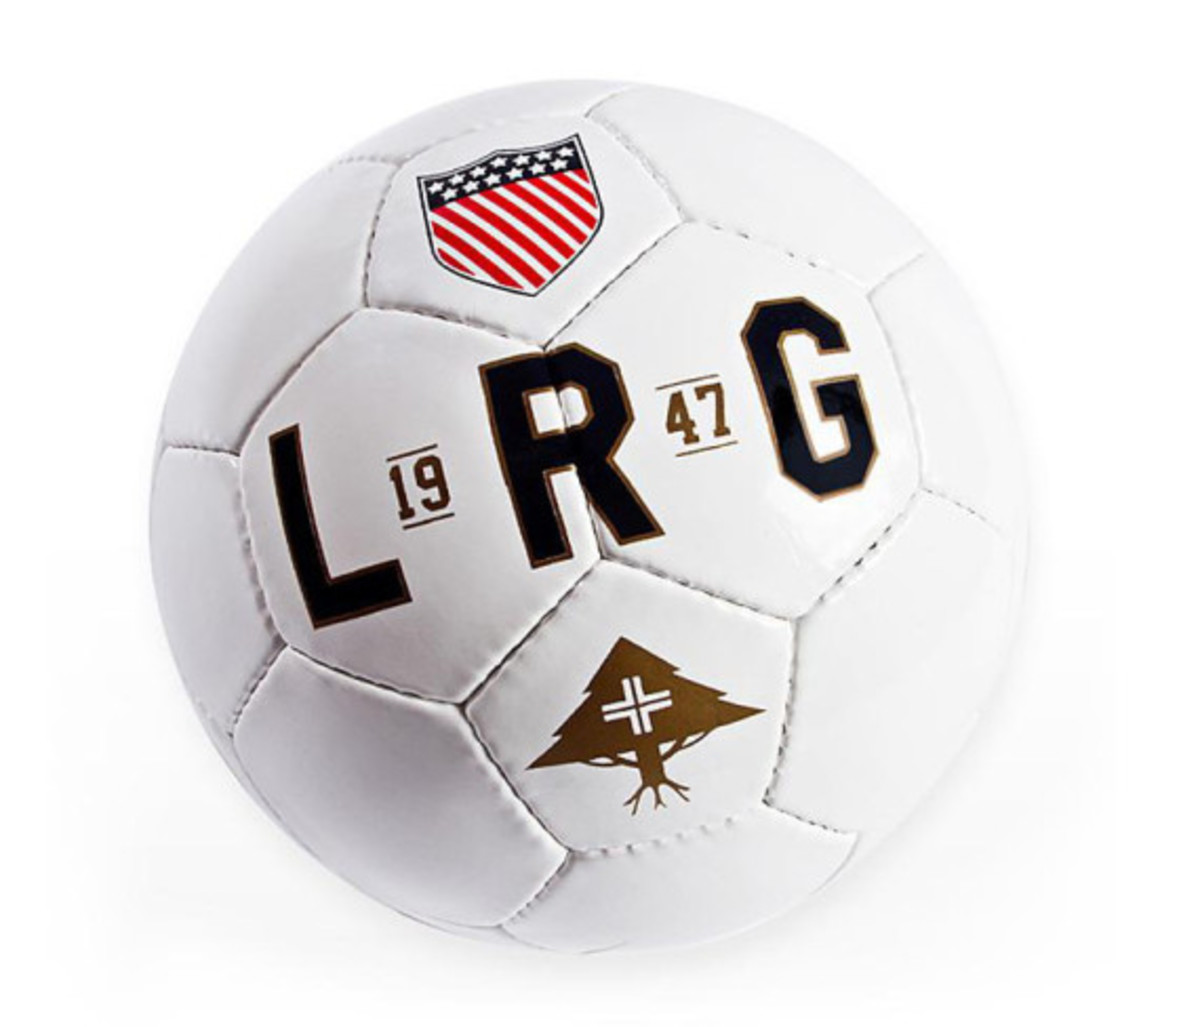 lrg-lifted-national-anthem-soccer-ball-02